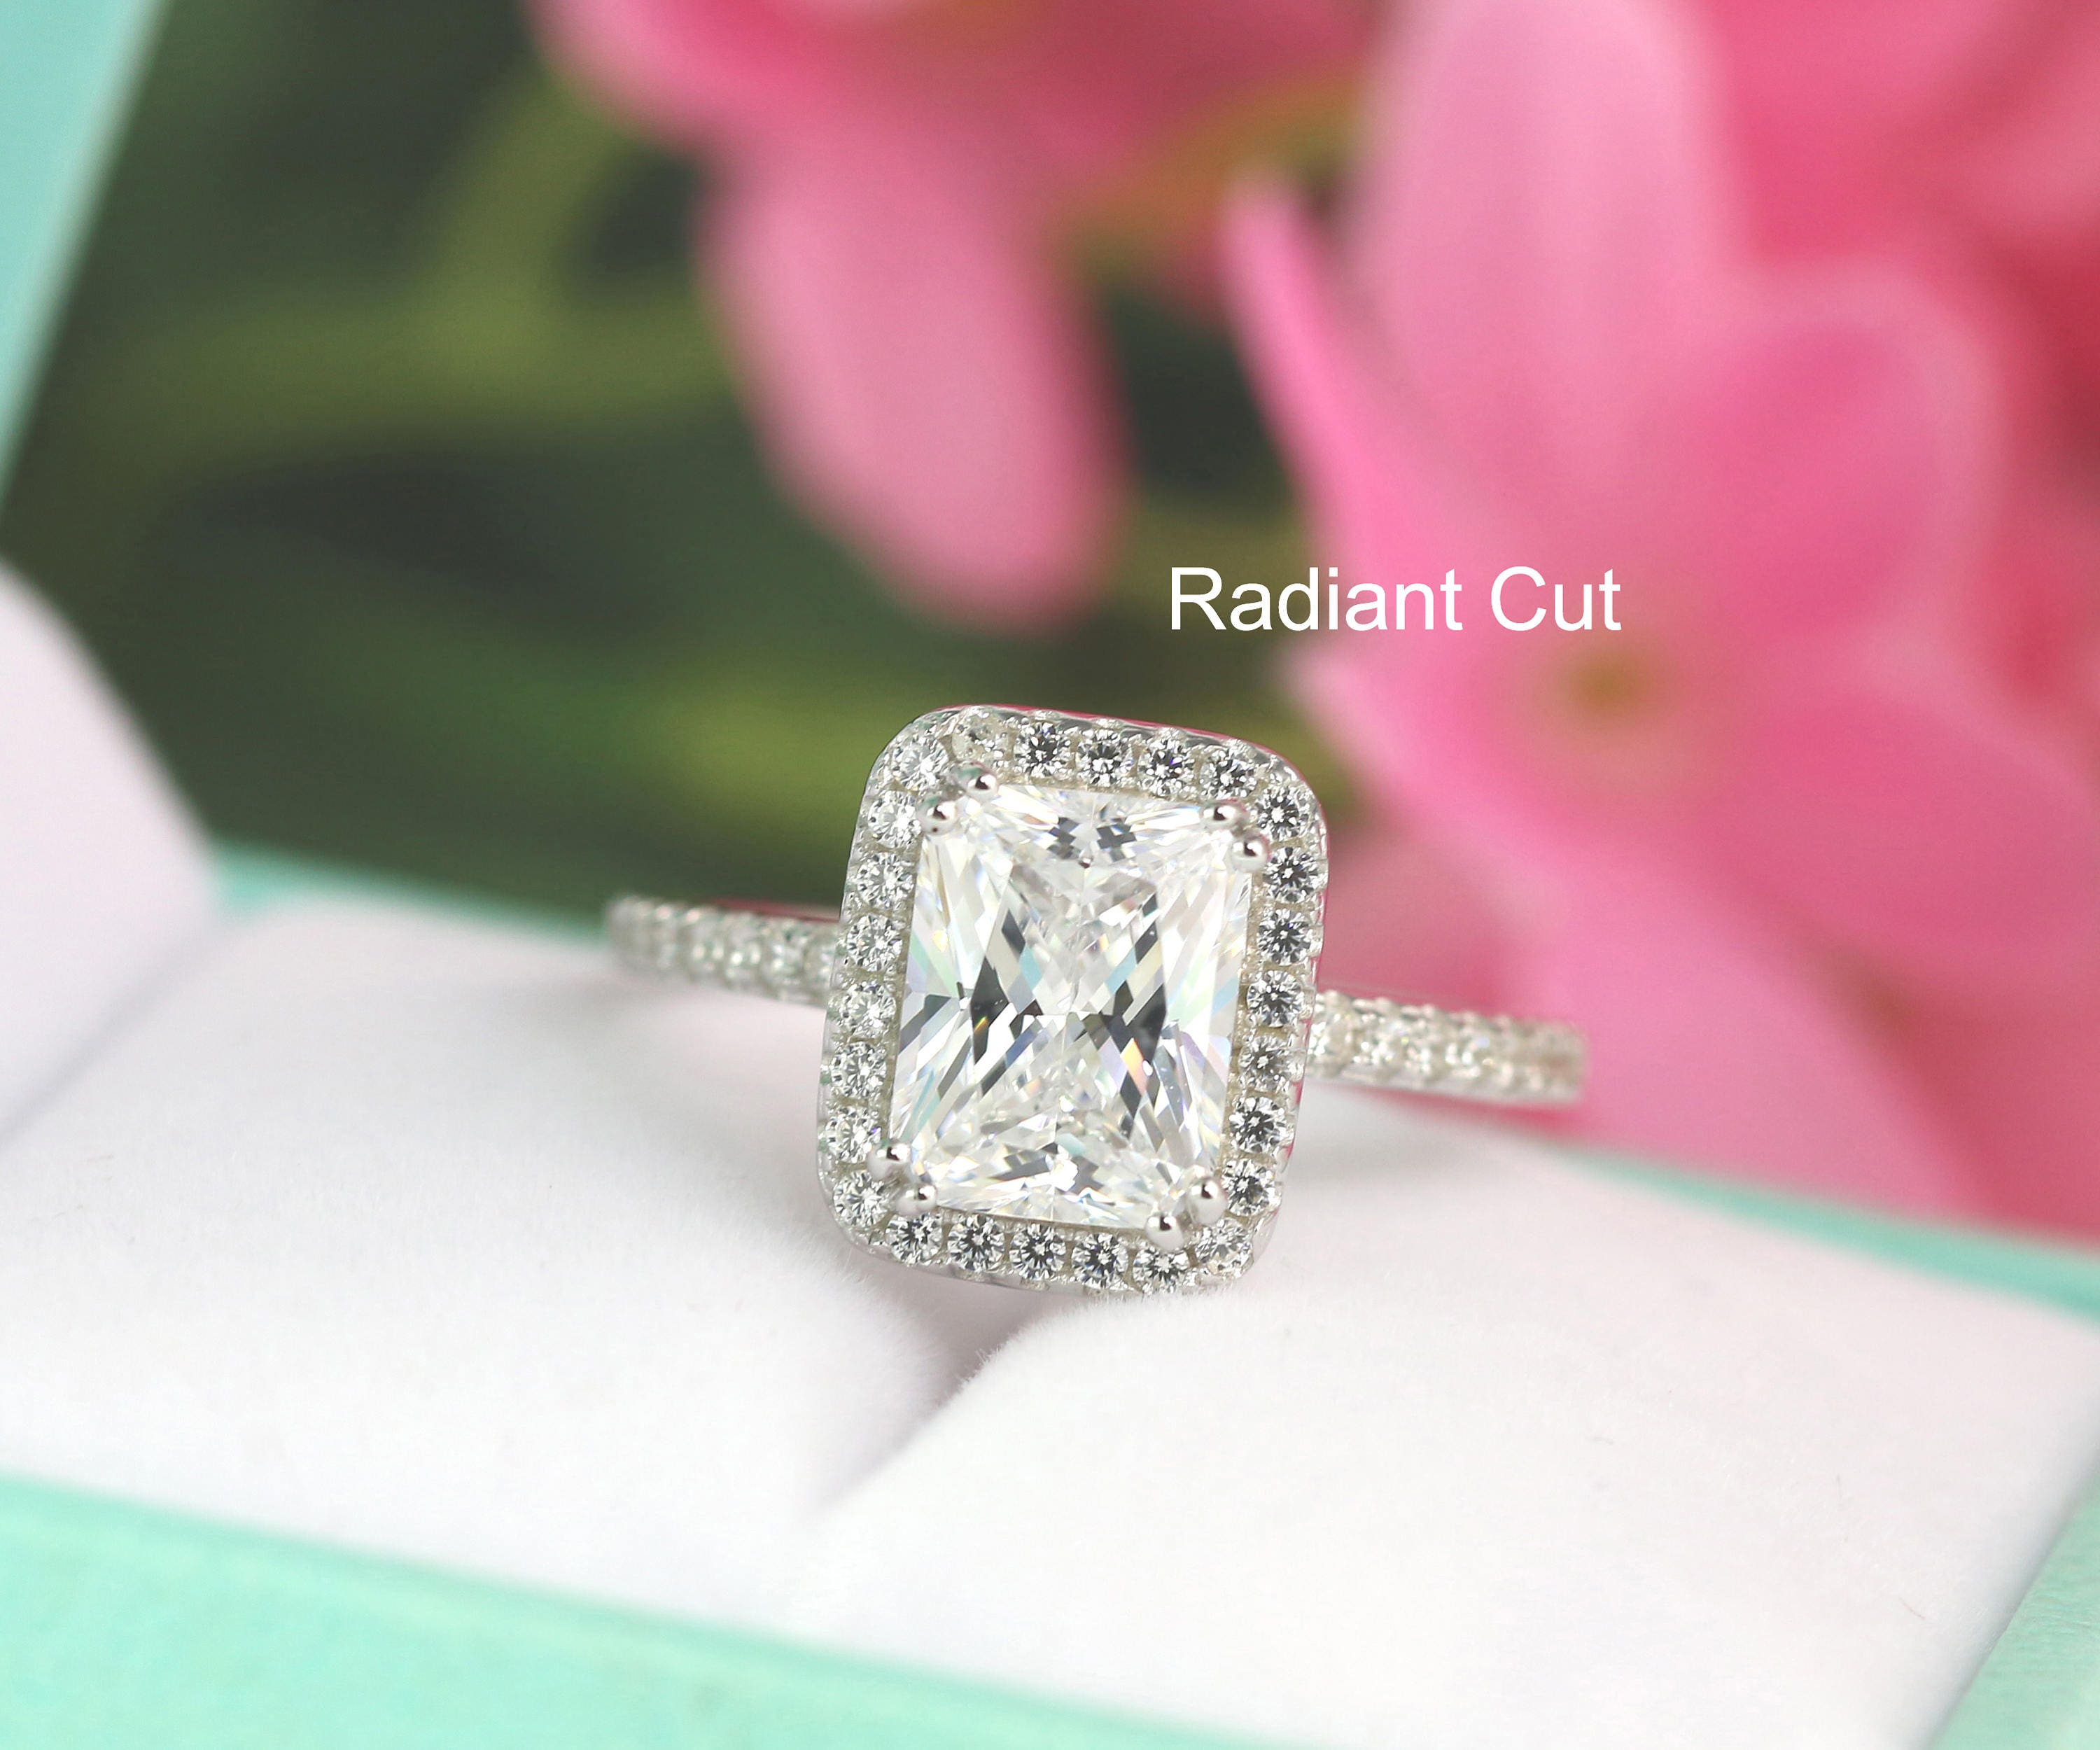 or west classic yellowview east create login engagement rings to ring account earn radiant points an